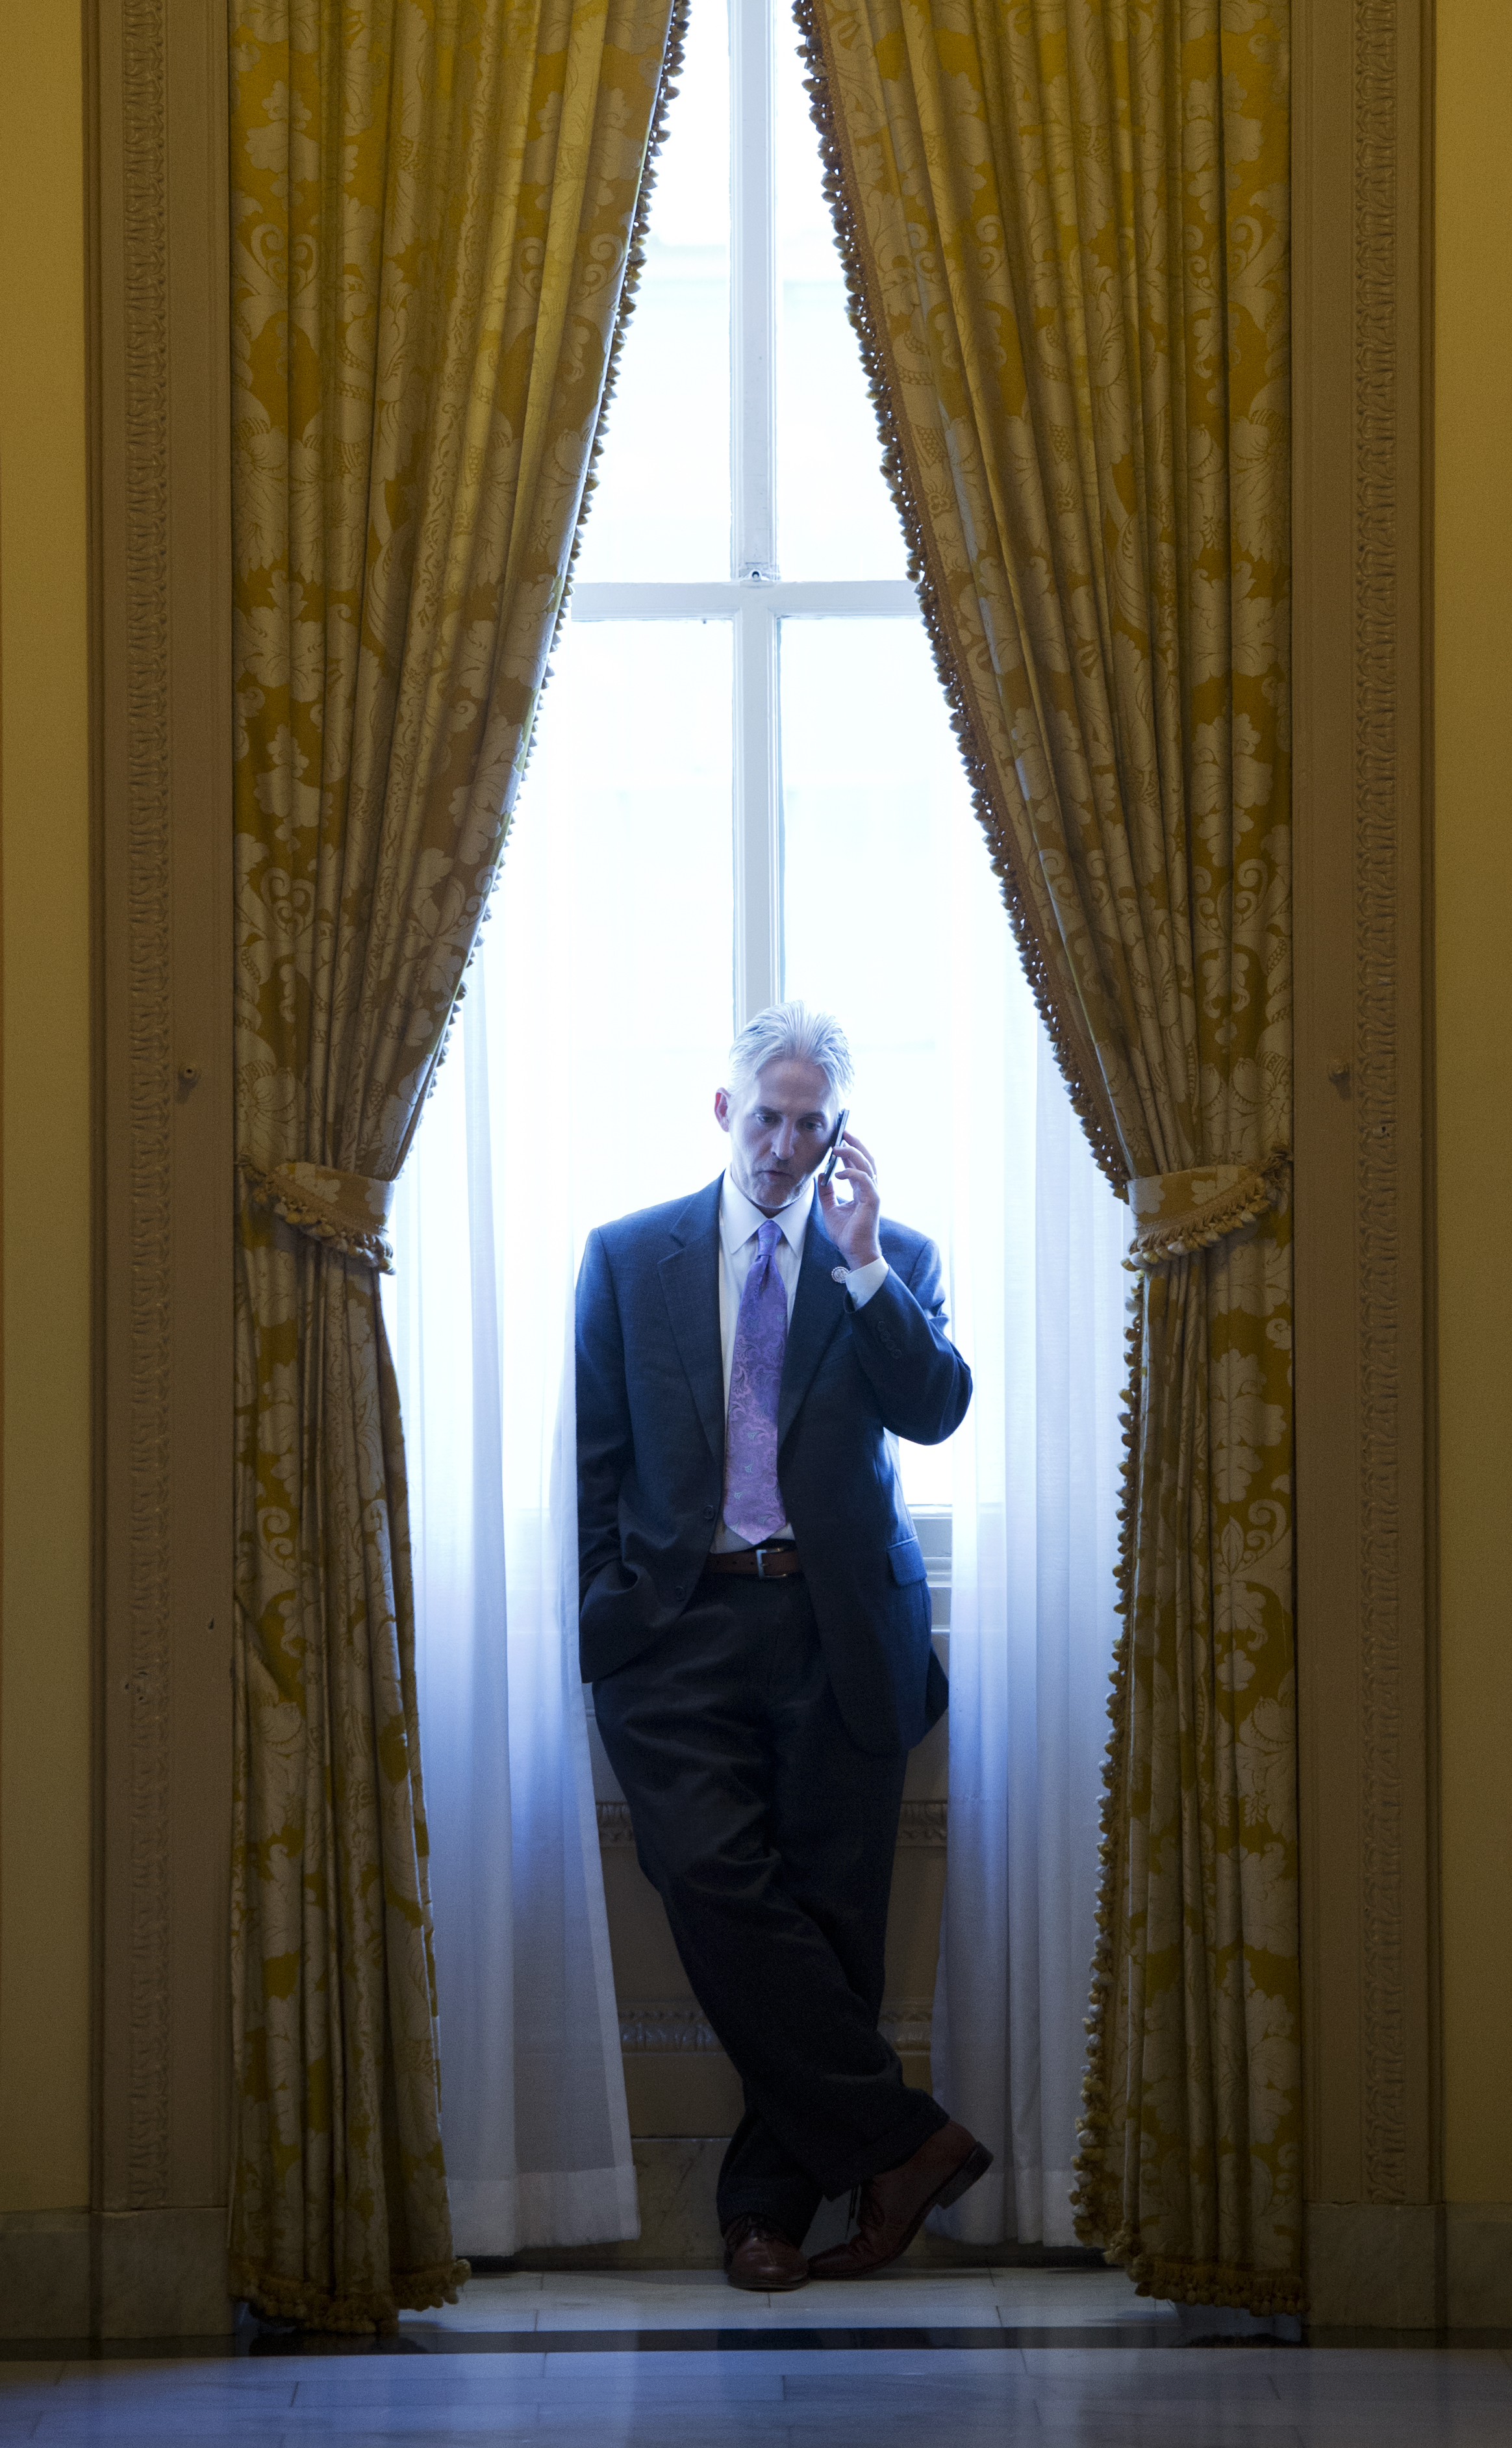 Rep. Trey Gowdy, R-S.C., talks on the phone on the House side of the Capitol.